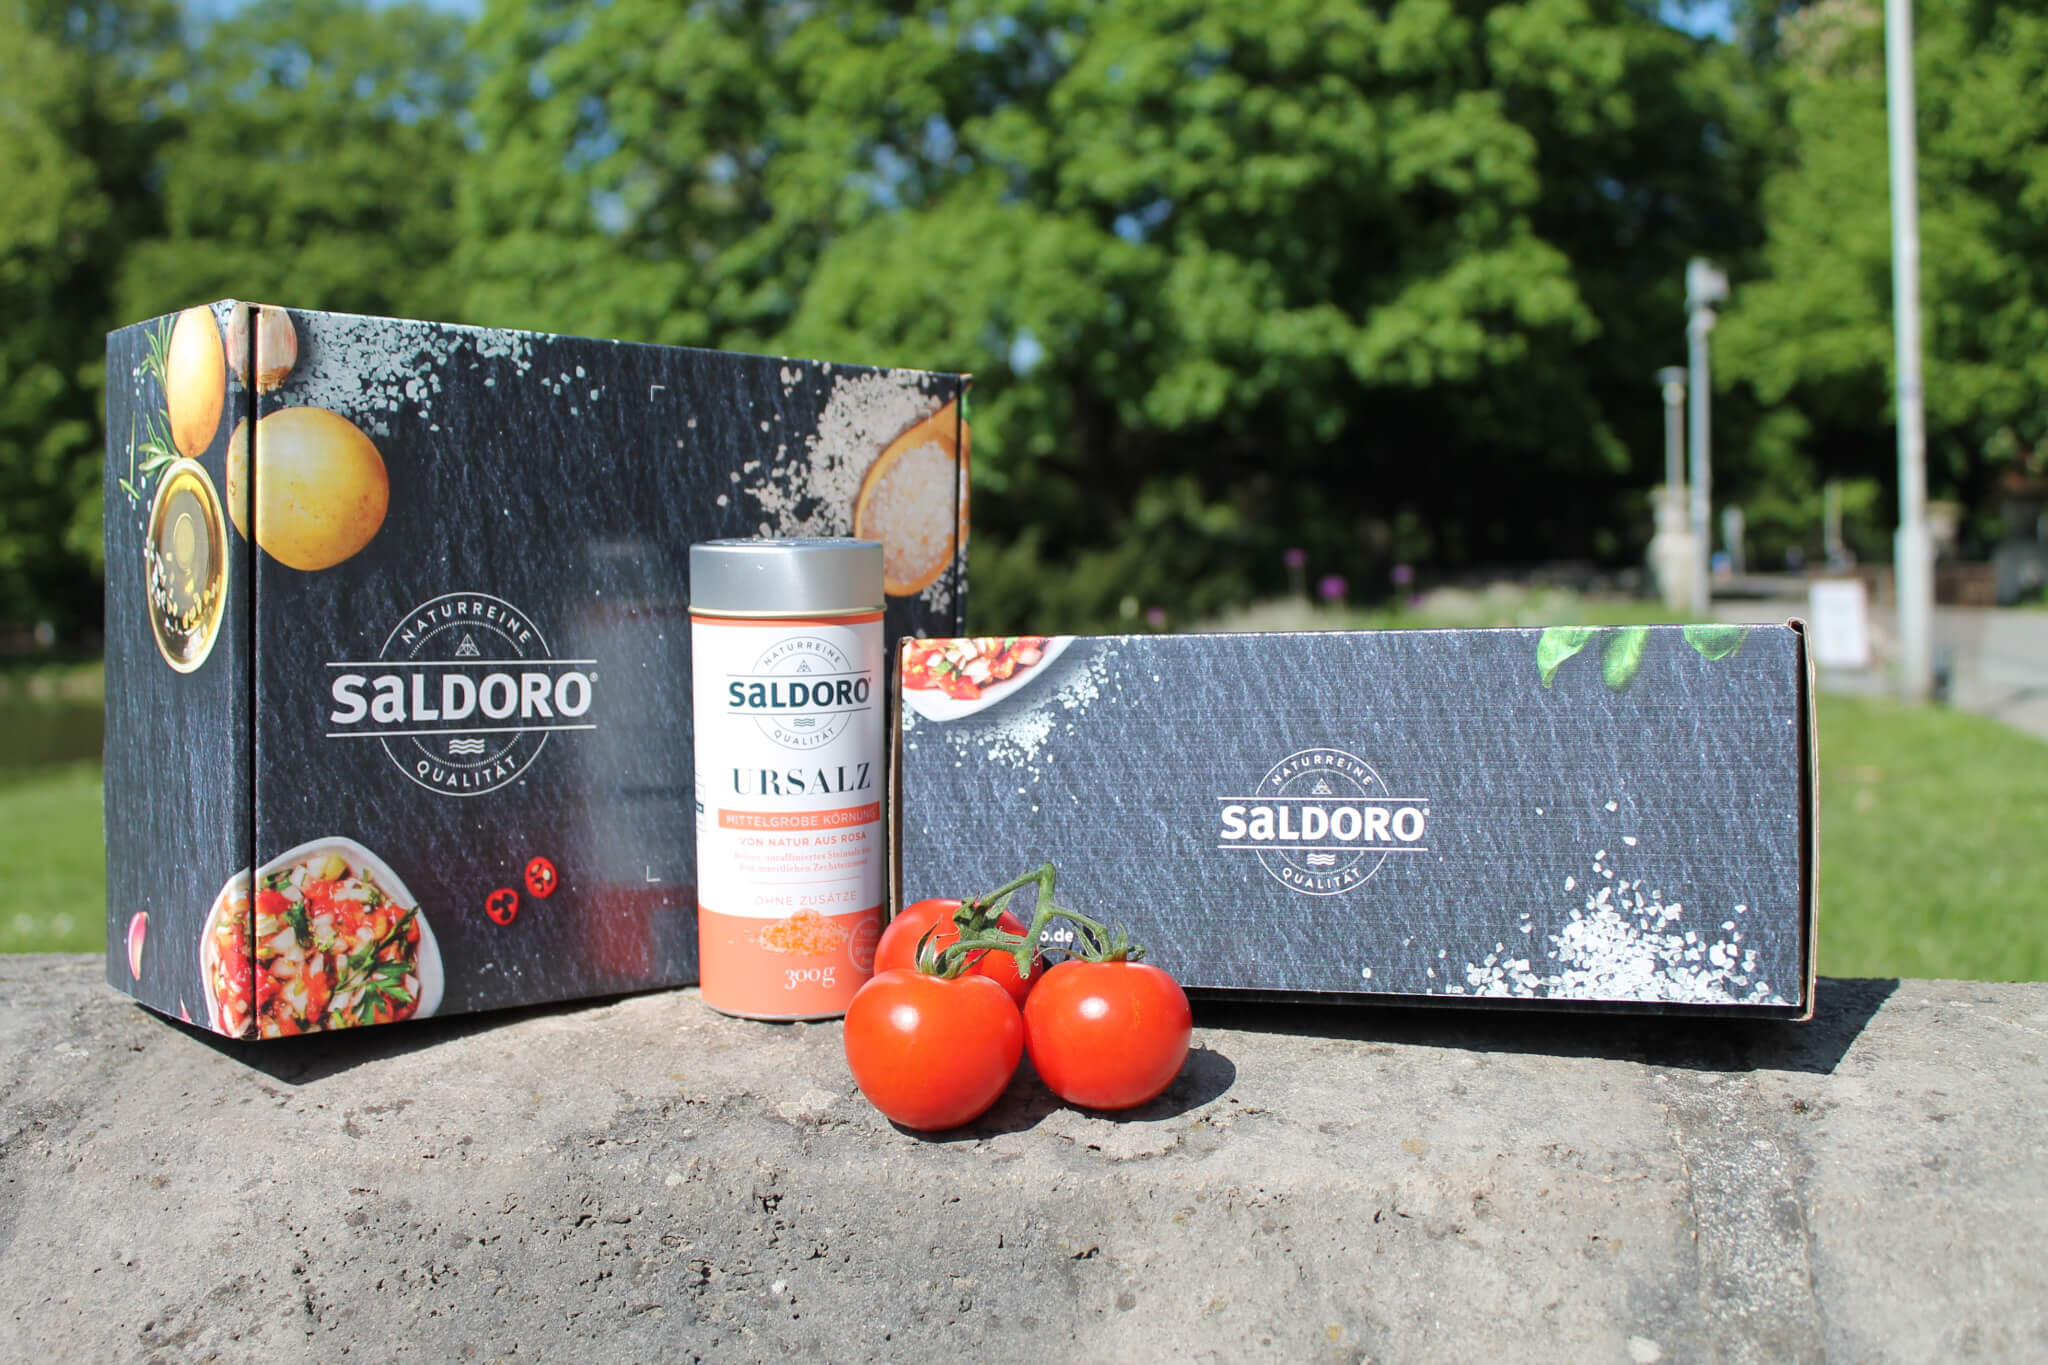 Saldoro full color mailer box